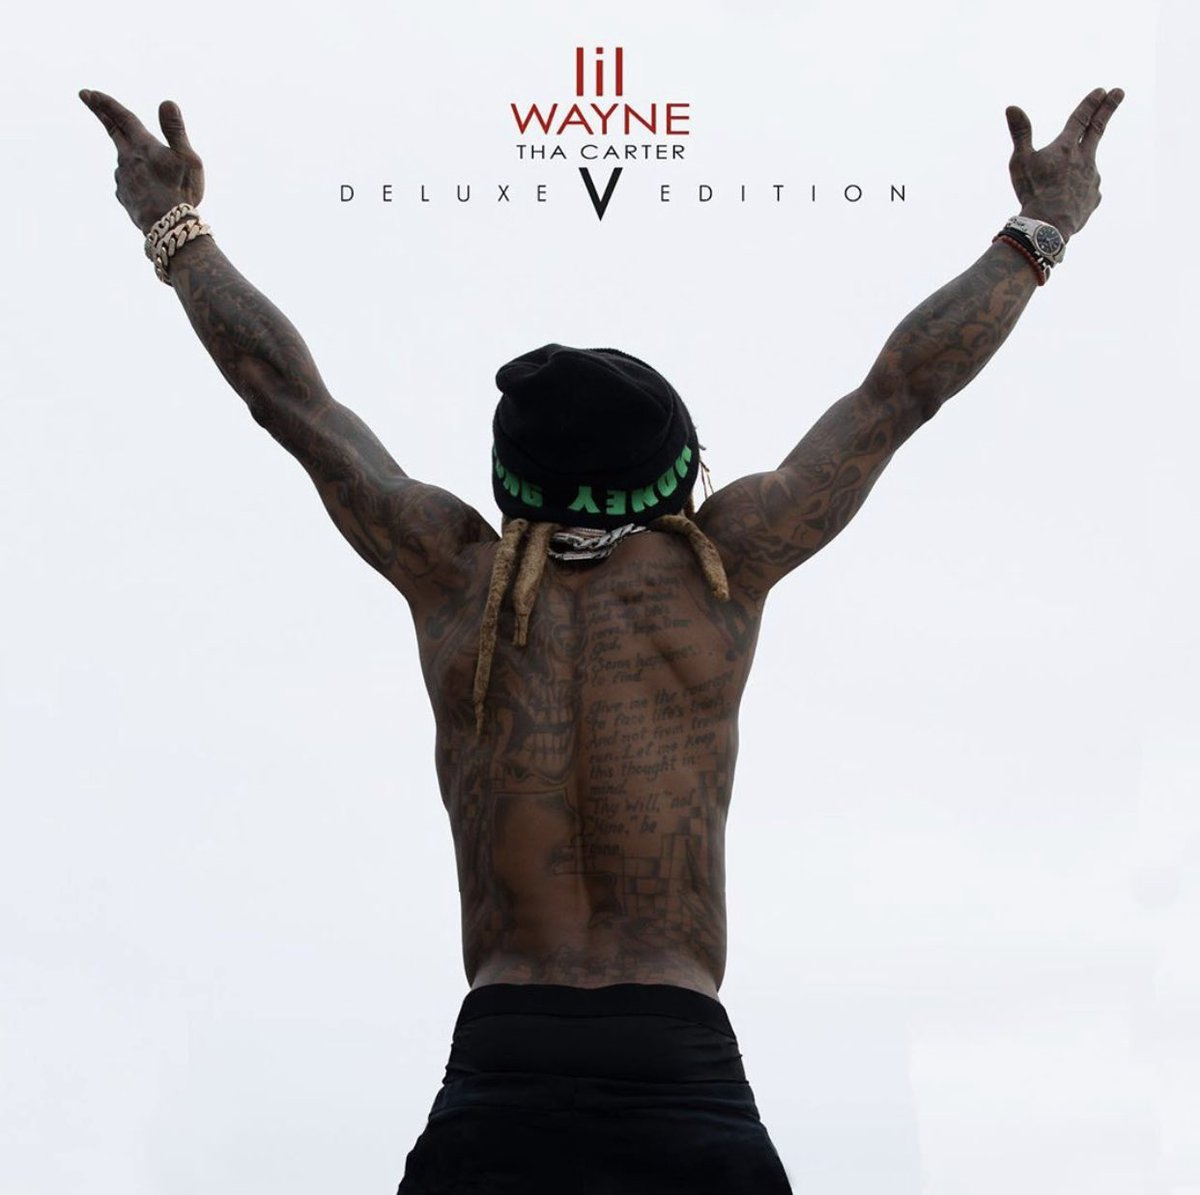 """#LilWayne recently dropped the deluxe version for """"Tha Carter 5"""" album. Y'all liking it so far?!👇🎵 @LilTunechi https://t.co/FHY6OCRtn7"""